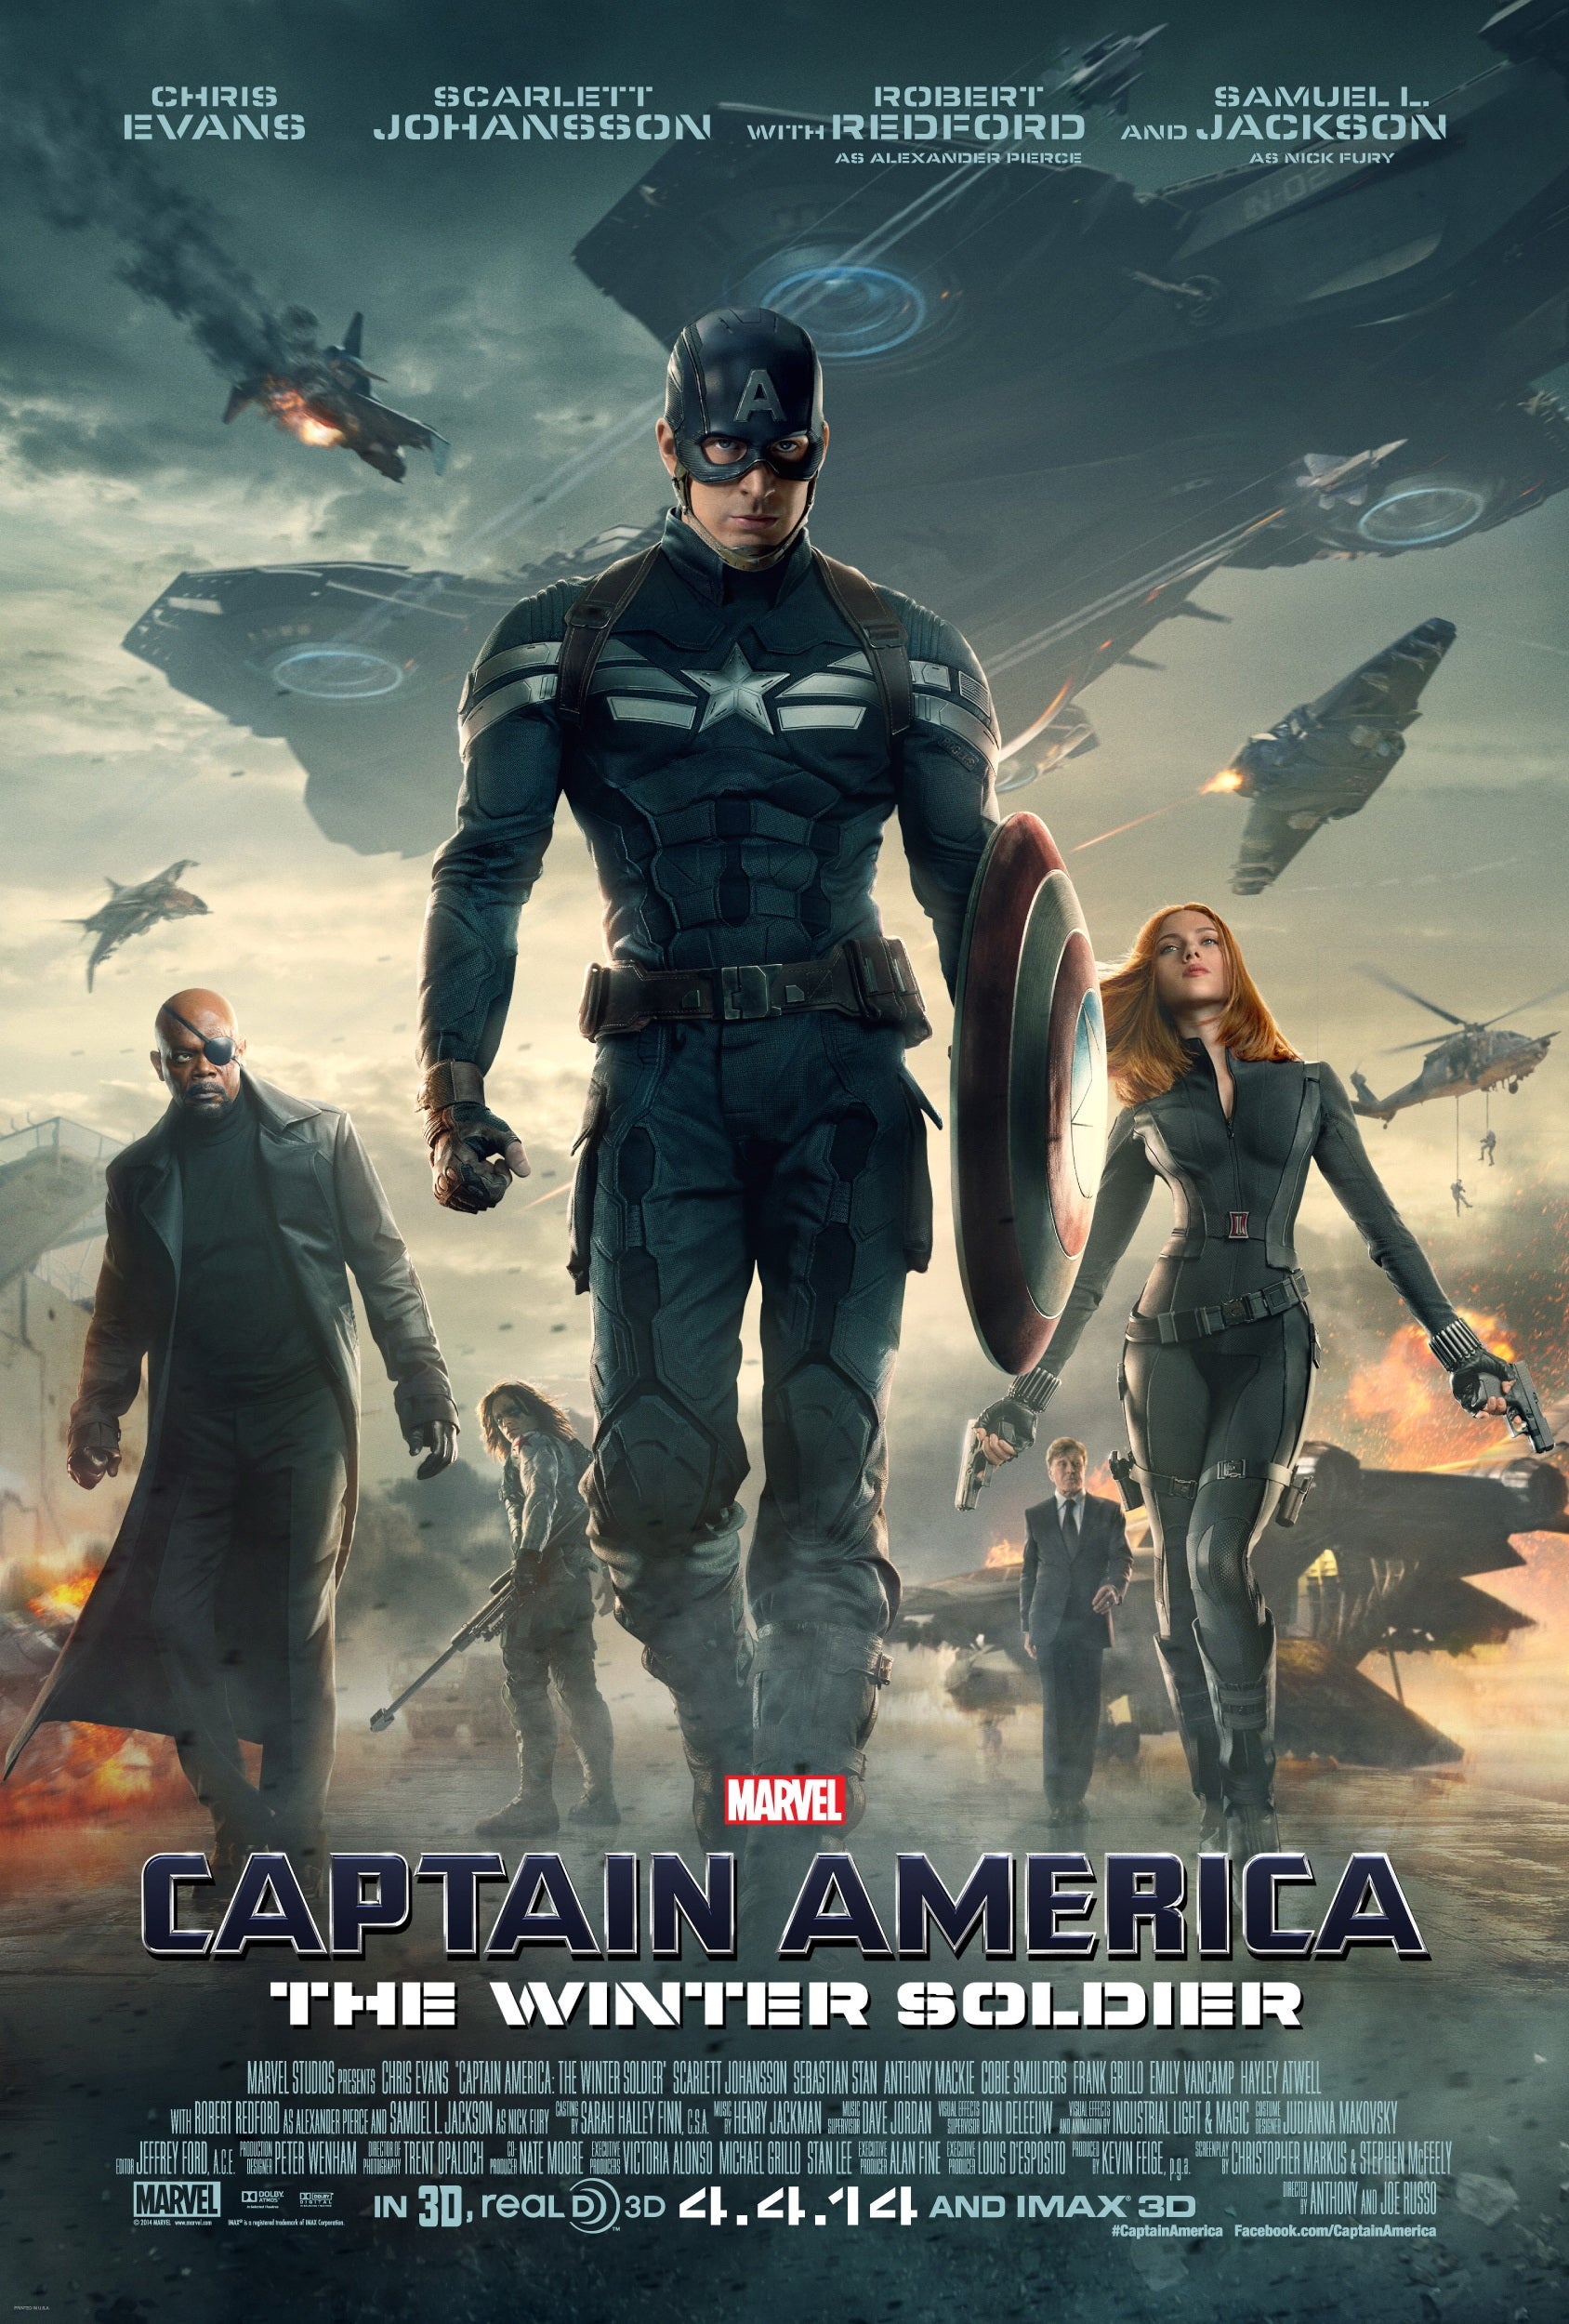 Captain America The Winter Soldier Movie Poster - Marvel Cinematic Universe